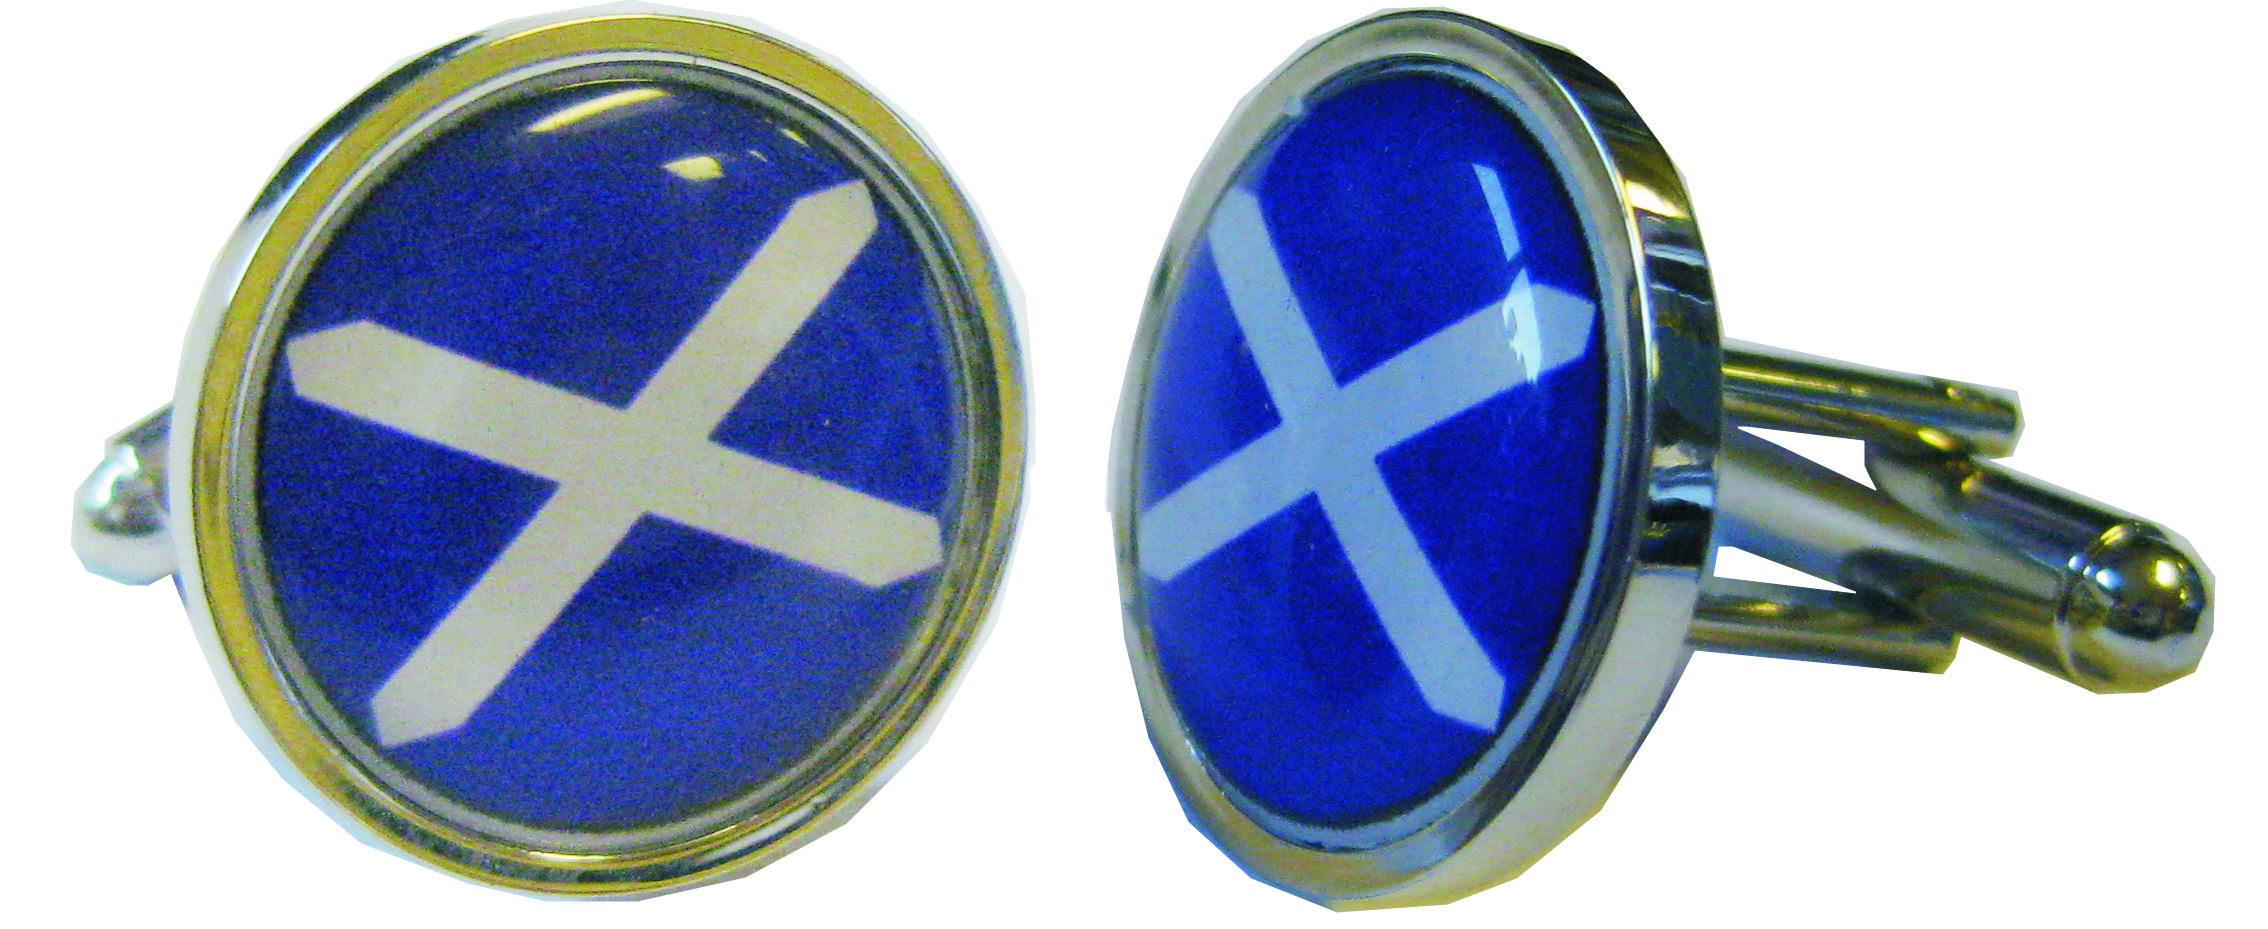 "St Andrew Flag Nickel Plated Cufflinks in Snap Hinged Box 2.5cm dia (1"")"